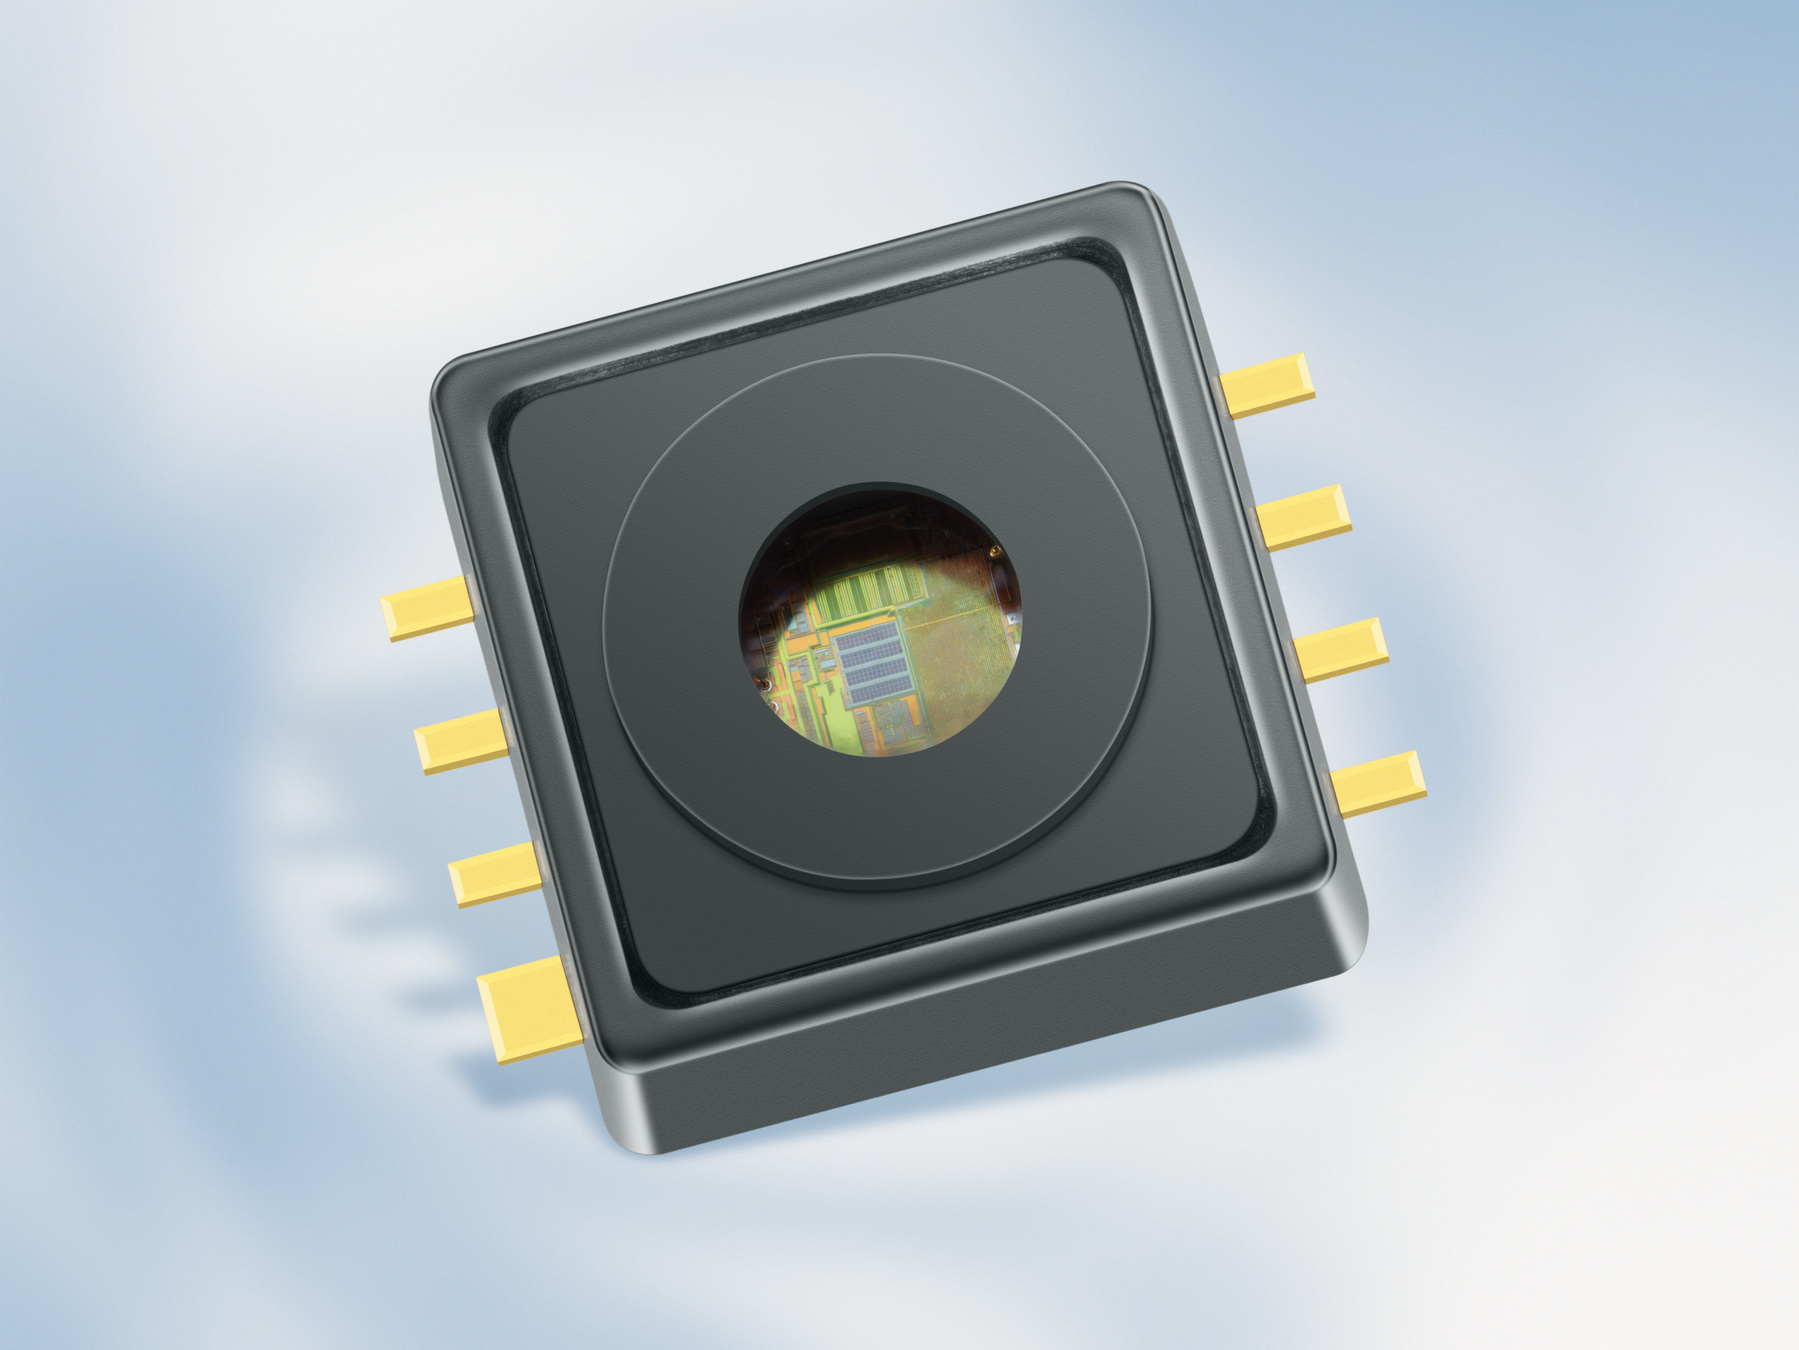 Infineon introduces KP200 pressure sensor for autombiles